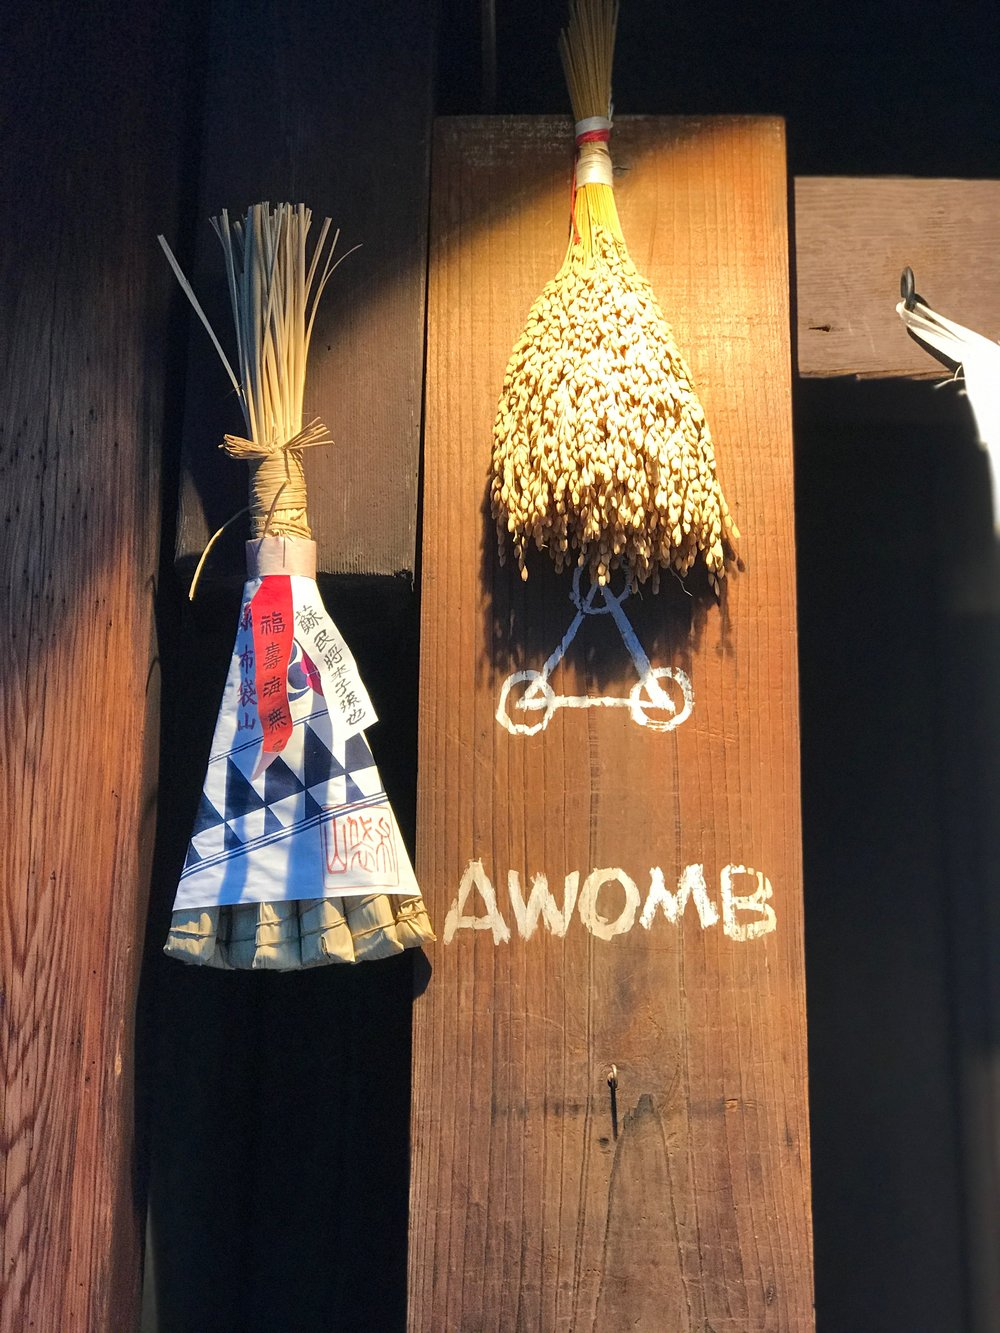 Awomb best food restaurants in kyoto japan